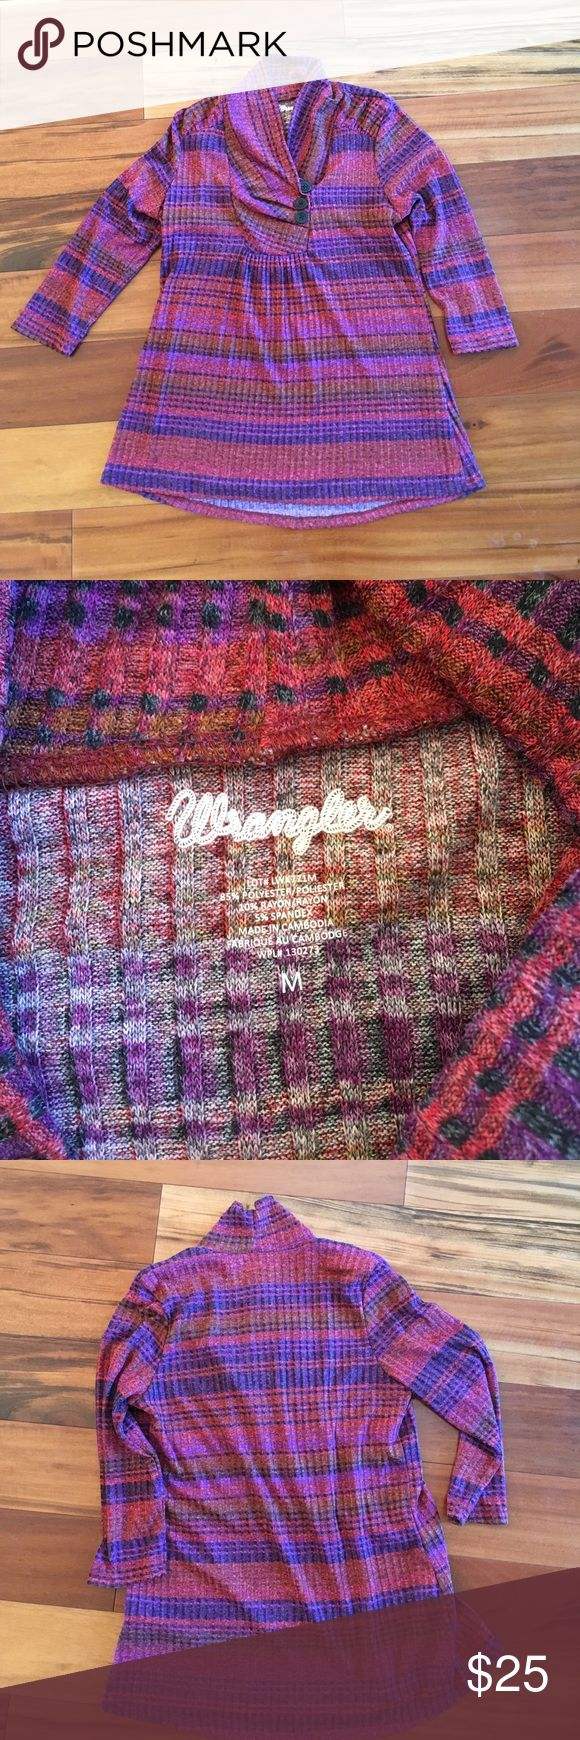 Wrangler Women's Cowl Neck sweater with buttons Brand new quality, never worn. 3/4 sleeve, ribbed. Red and purple tones. Wrangler Sweaters Cowl & Turtlenecks